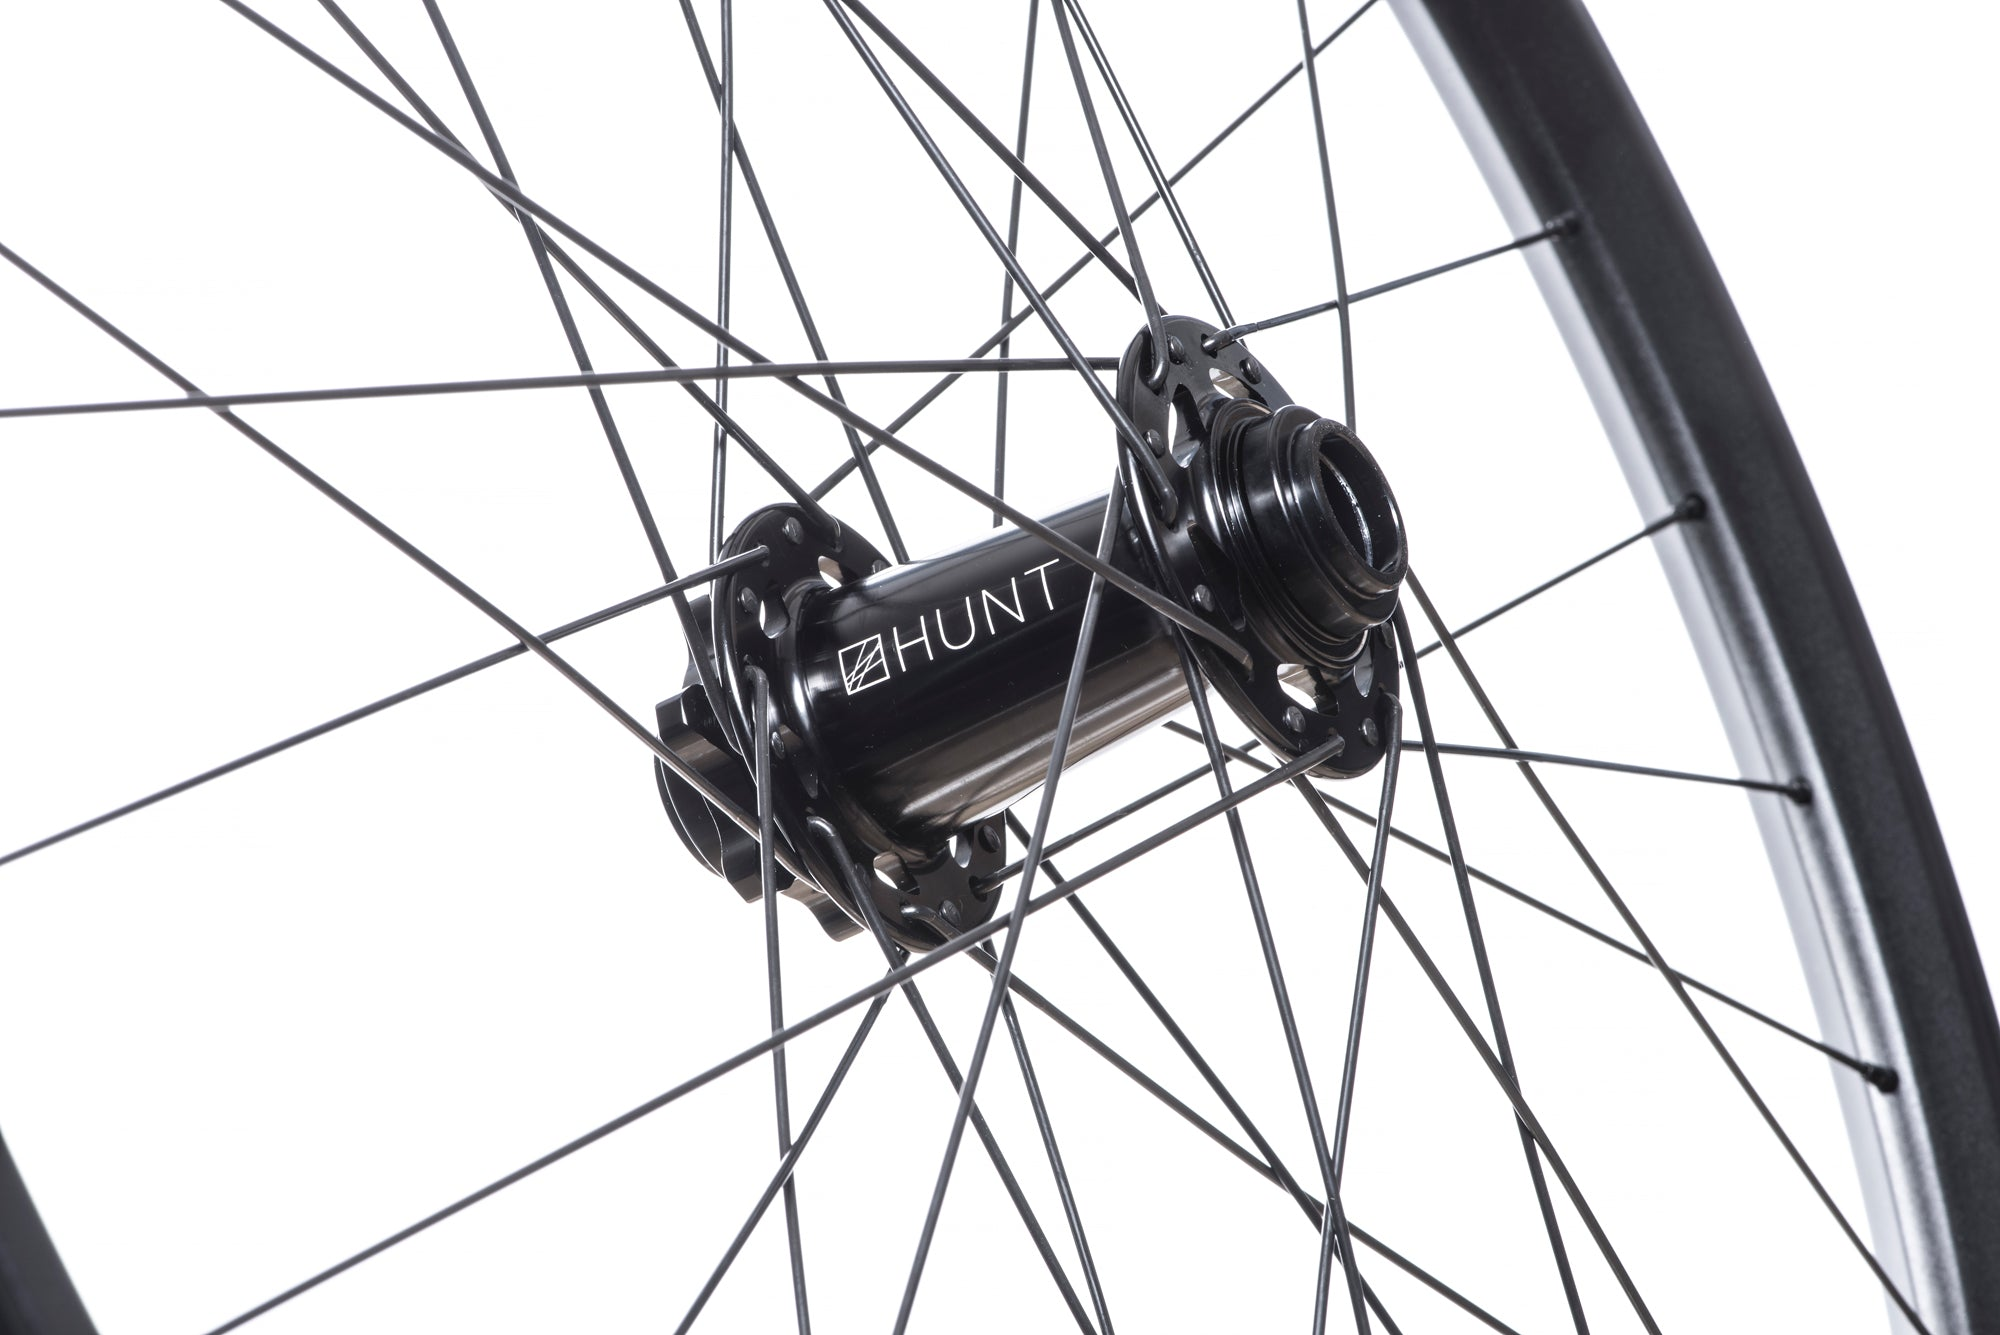 <h1>Front Hub</h1><i>We have gone all out on the front hub and beefed it up over our XC Wide and Trail Wide wheelsets. Featuring an oversized shell to accommodate larger and extremely durable bearings and 7075-T6 series alloy axles to increase stiffness. These hubs have been selected based on their ability to perform on the most aggressive trails. </i>